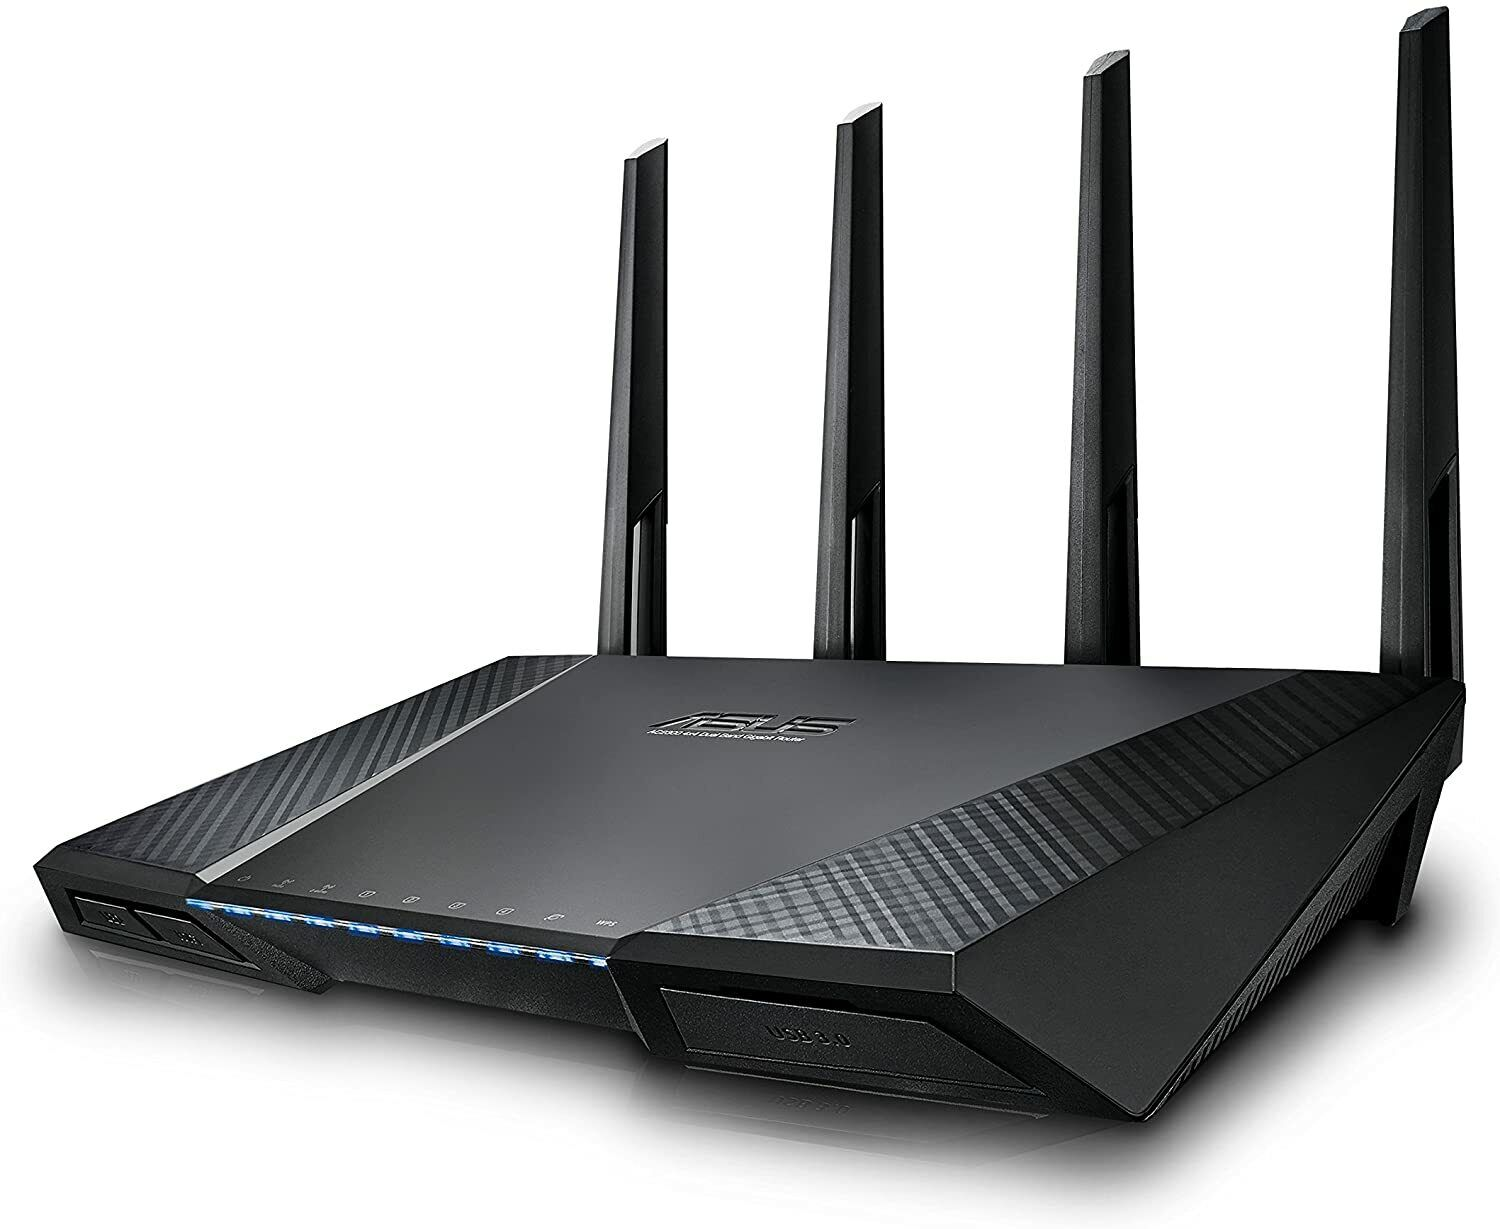 Asus RT-AC87U Gigabit Router Wireless AC 2400